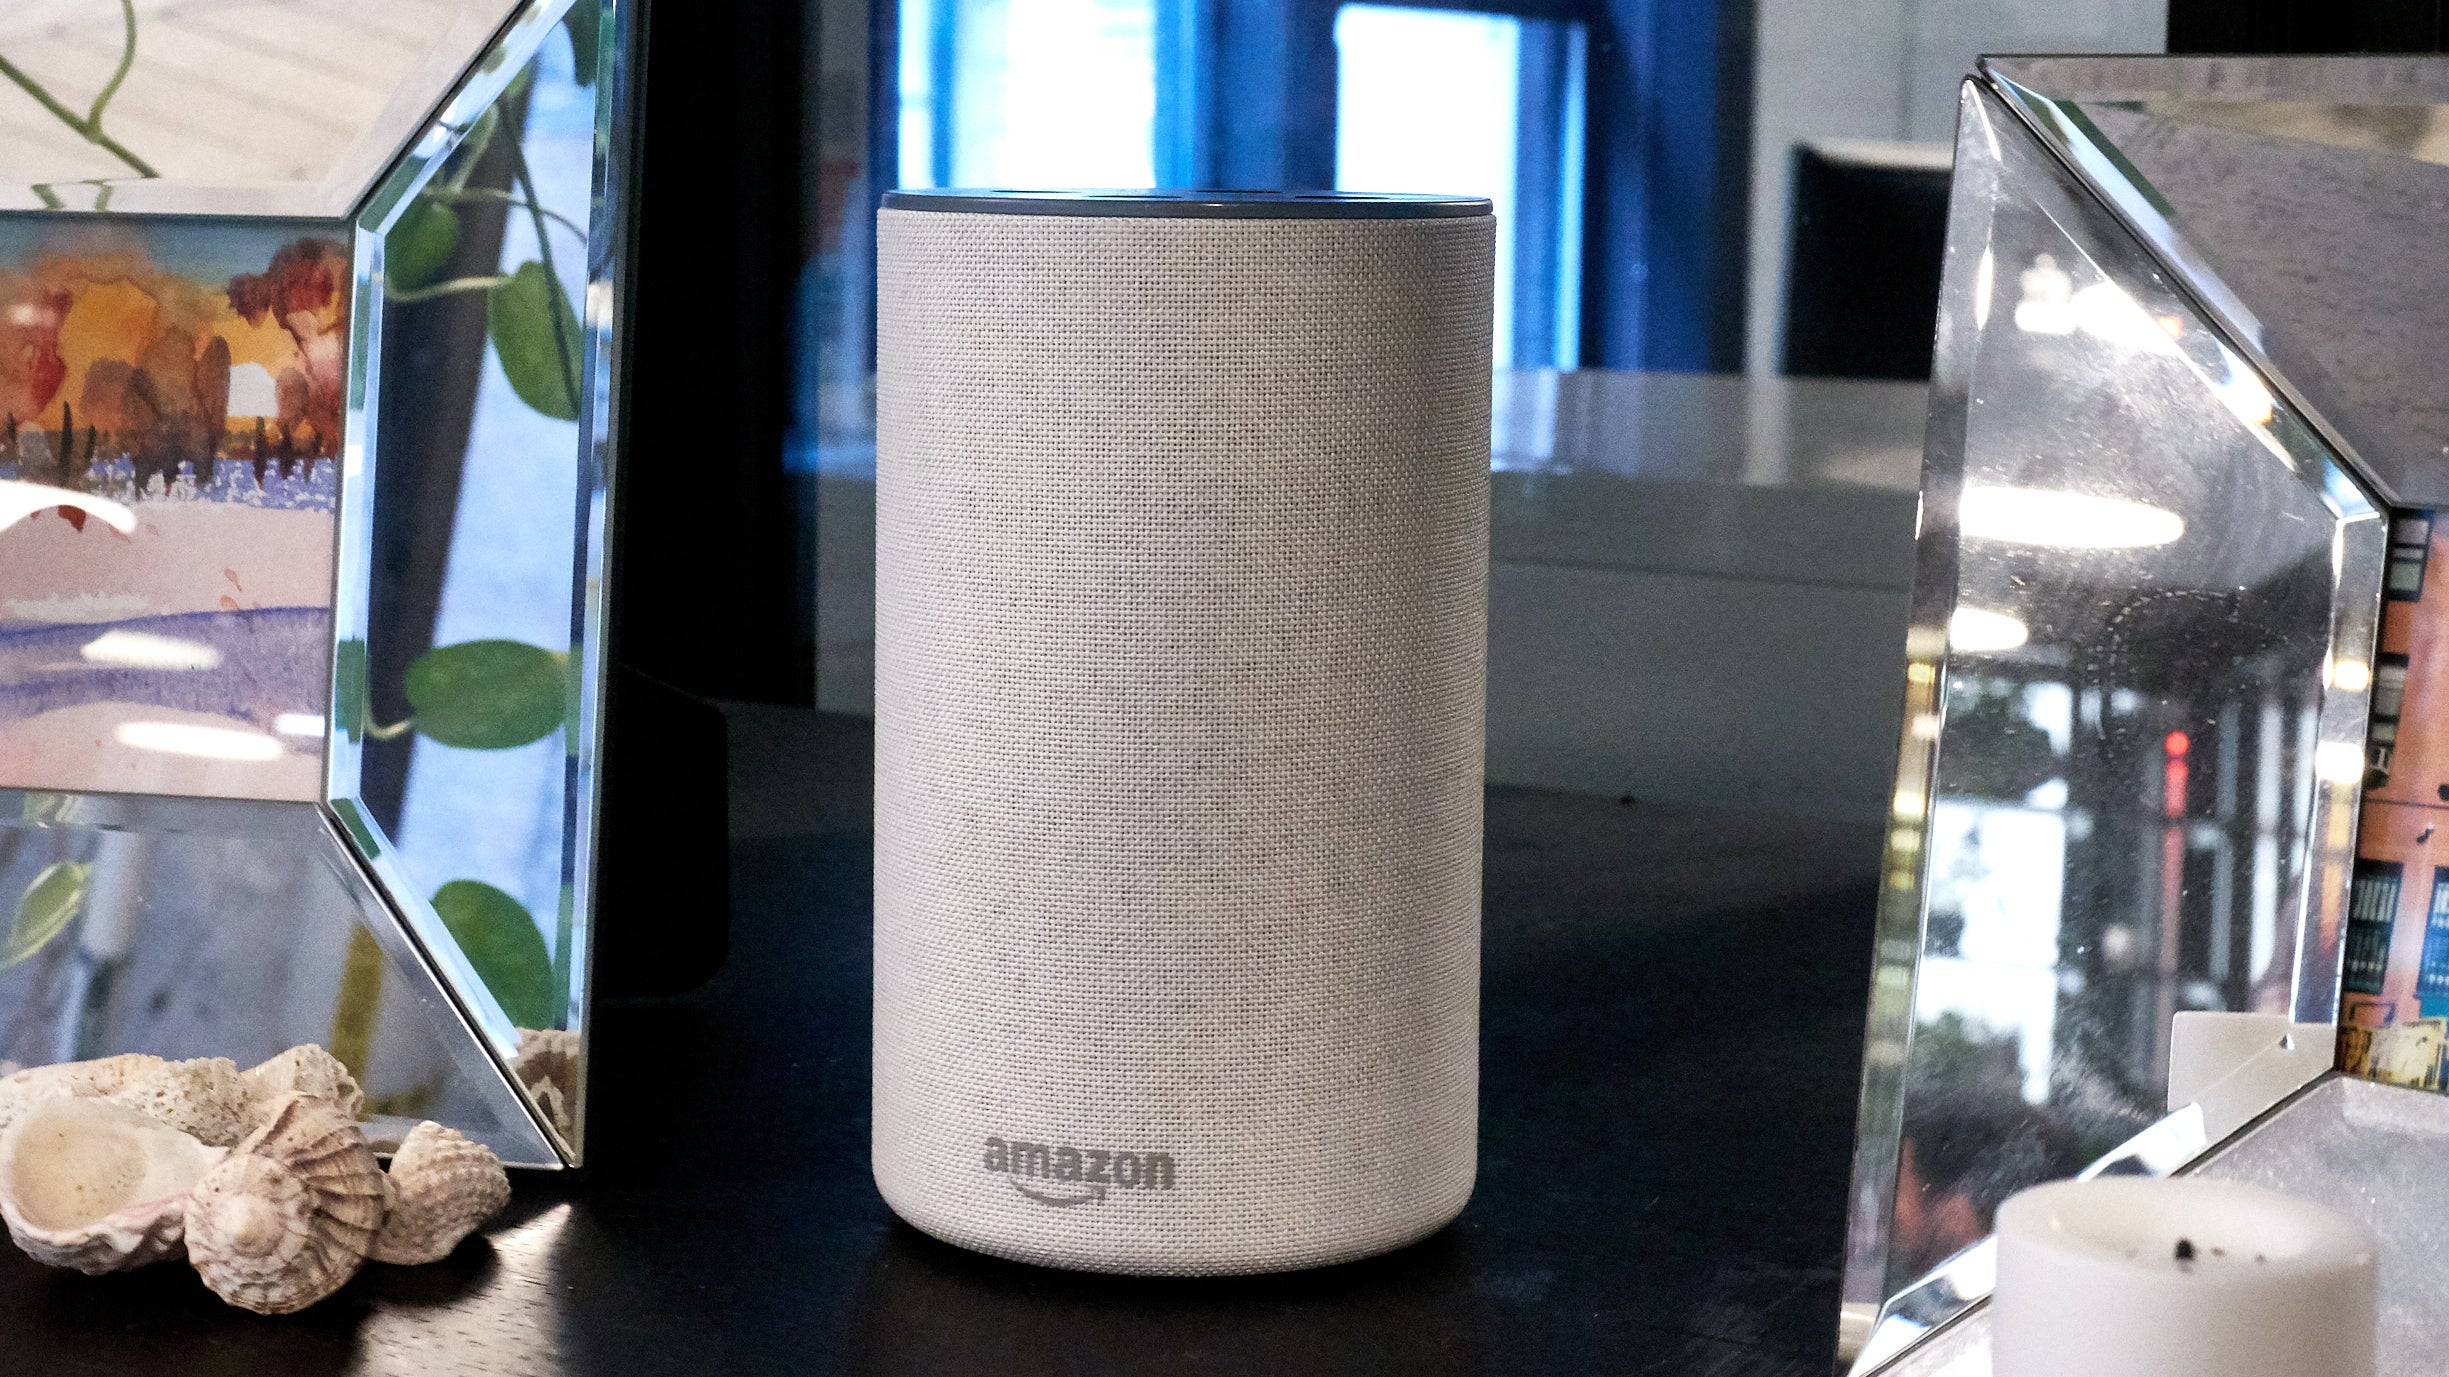 Amazon Confirms Alexa Heard A Couple's Background Conversation As A Command To Record Them